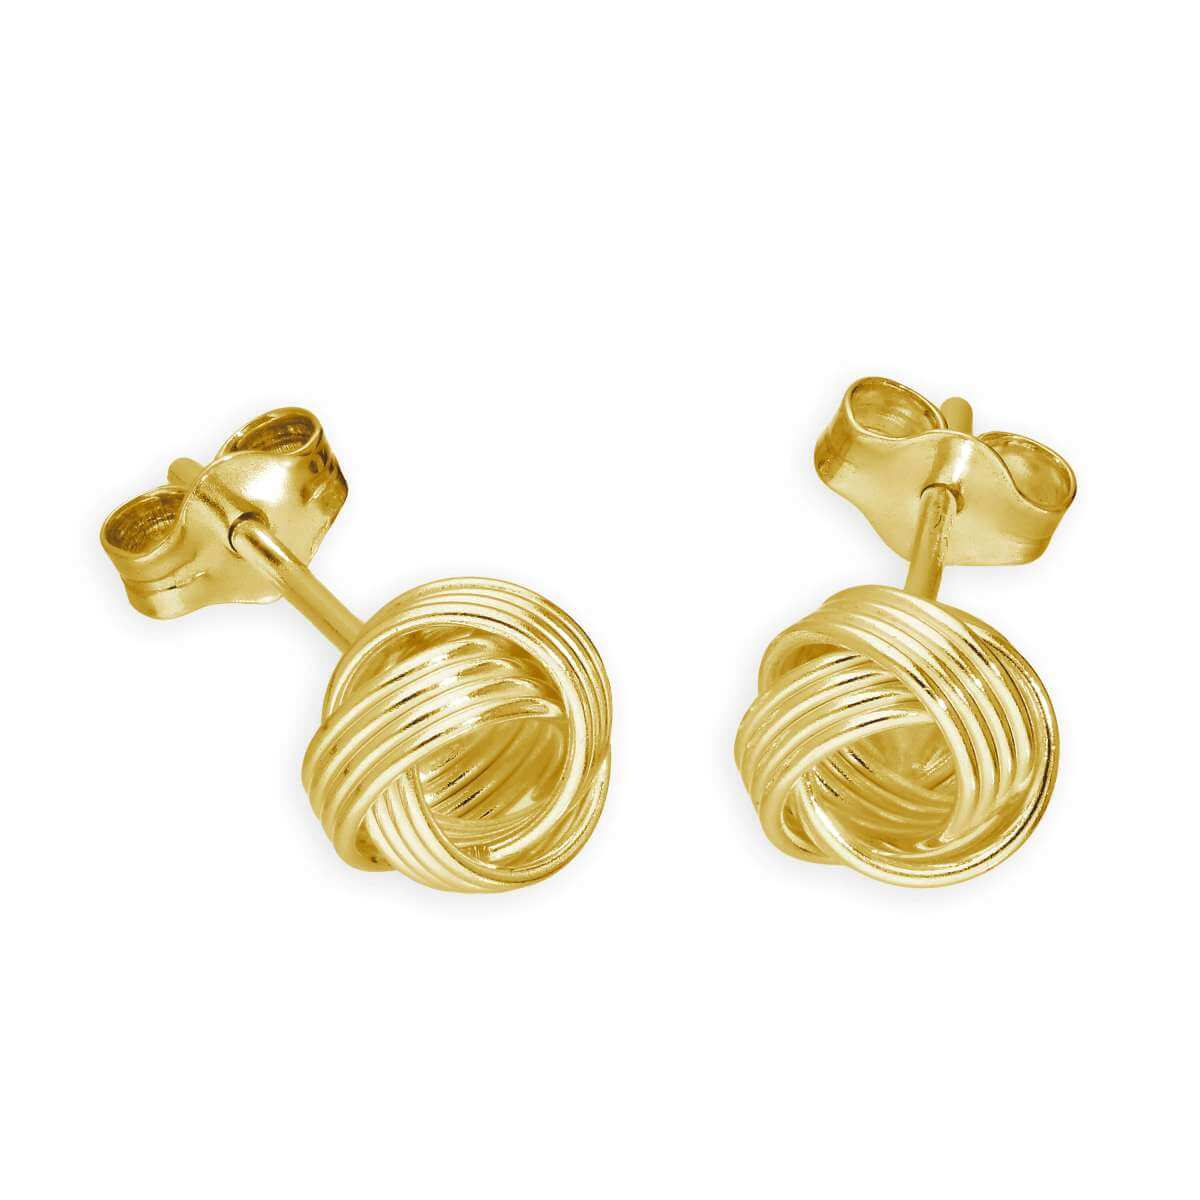 Gold Plated Sterling Silver 6mm Knot Stud Earrings